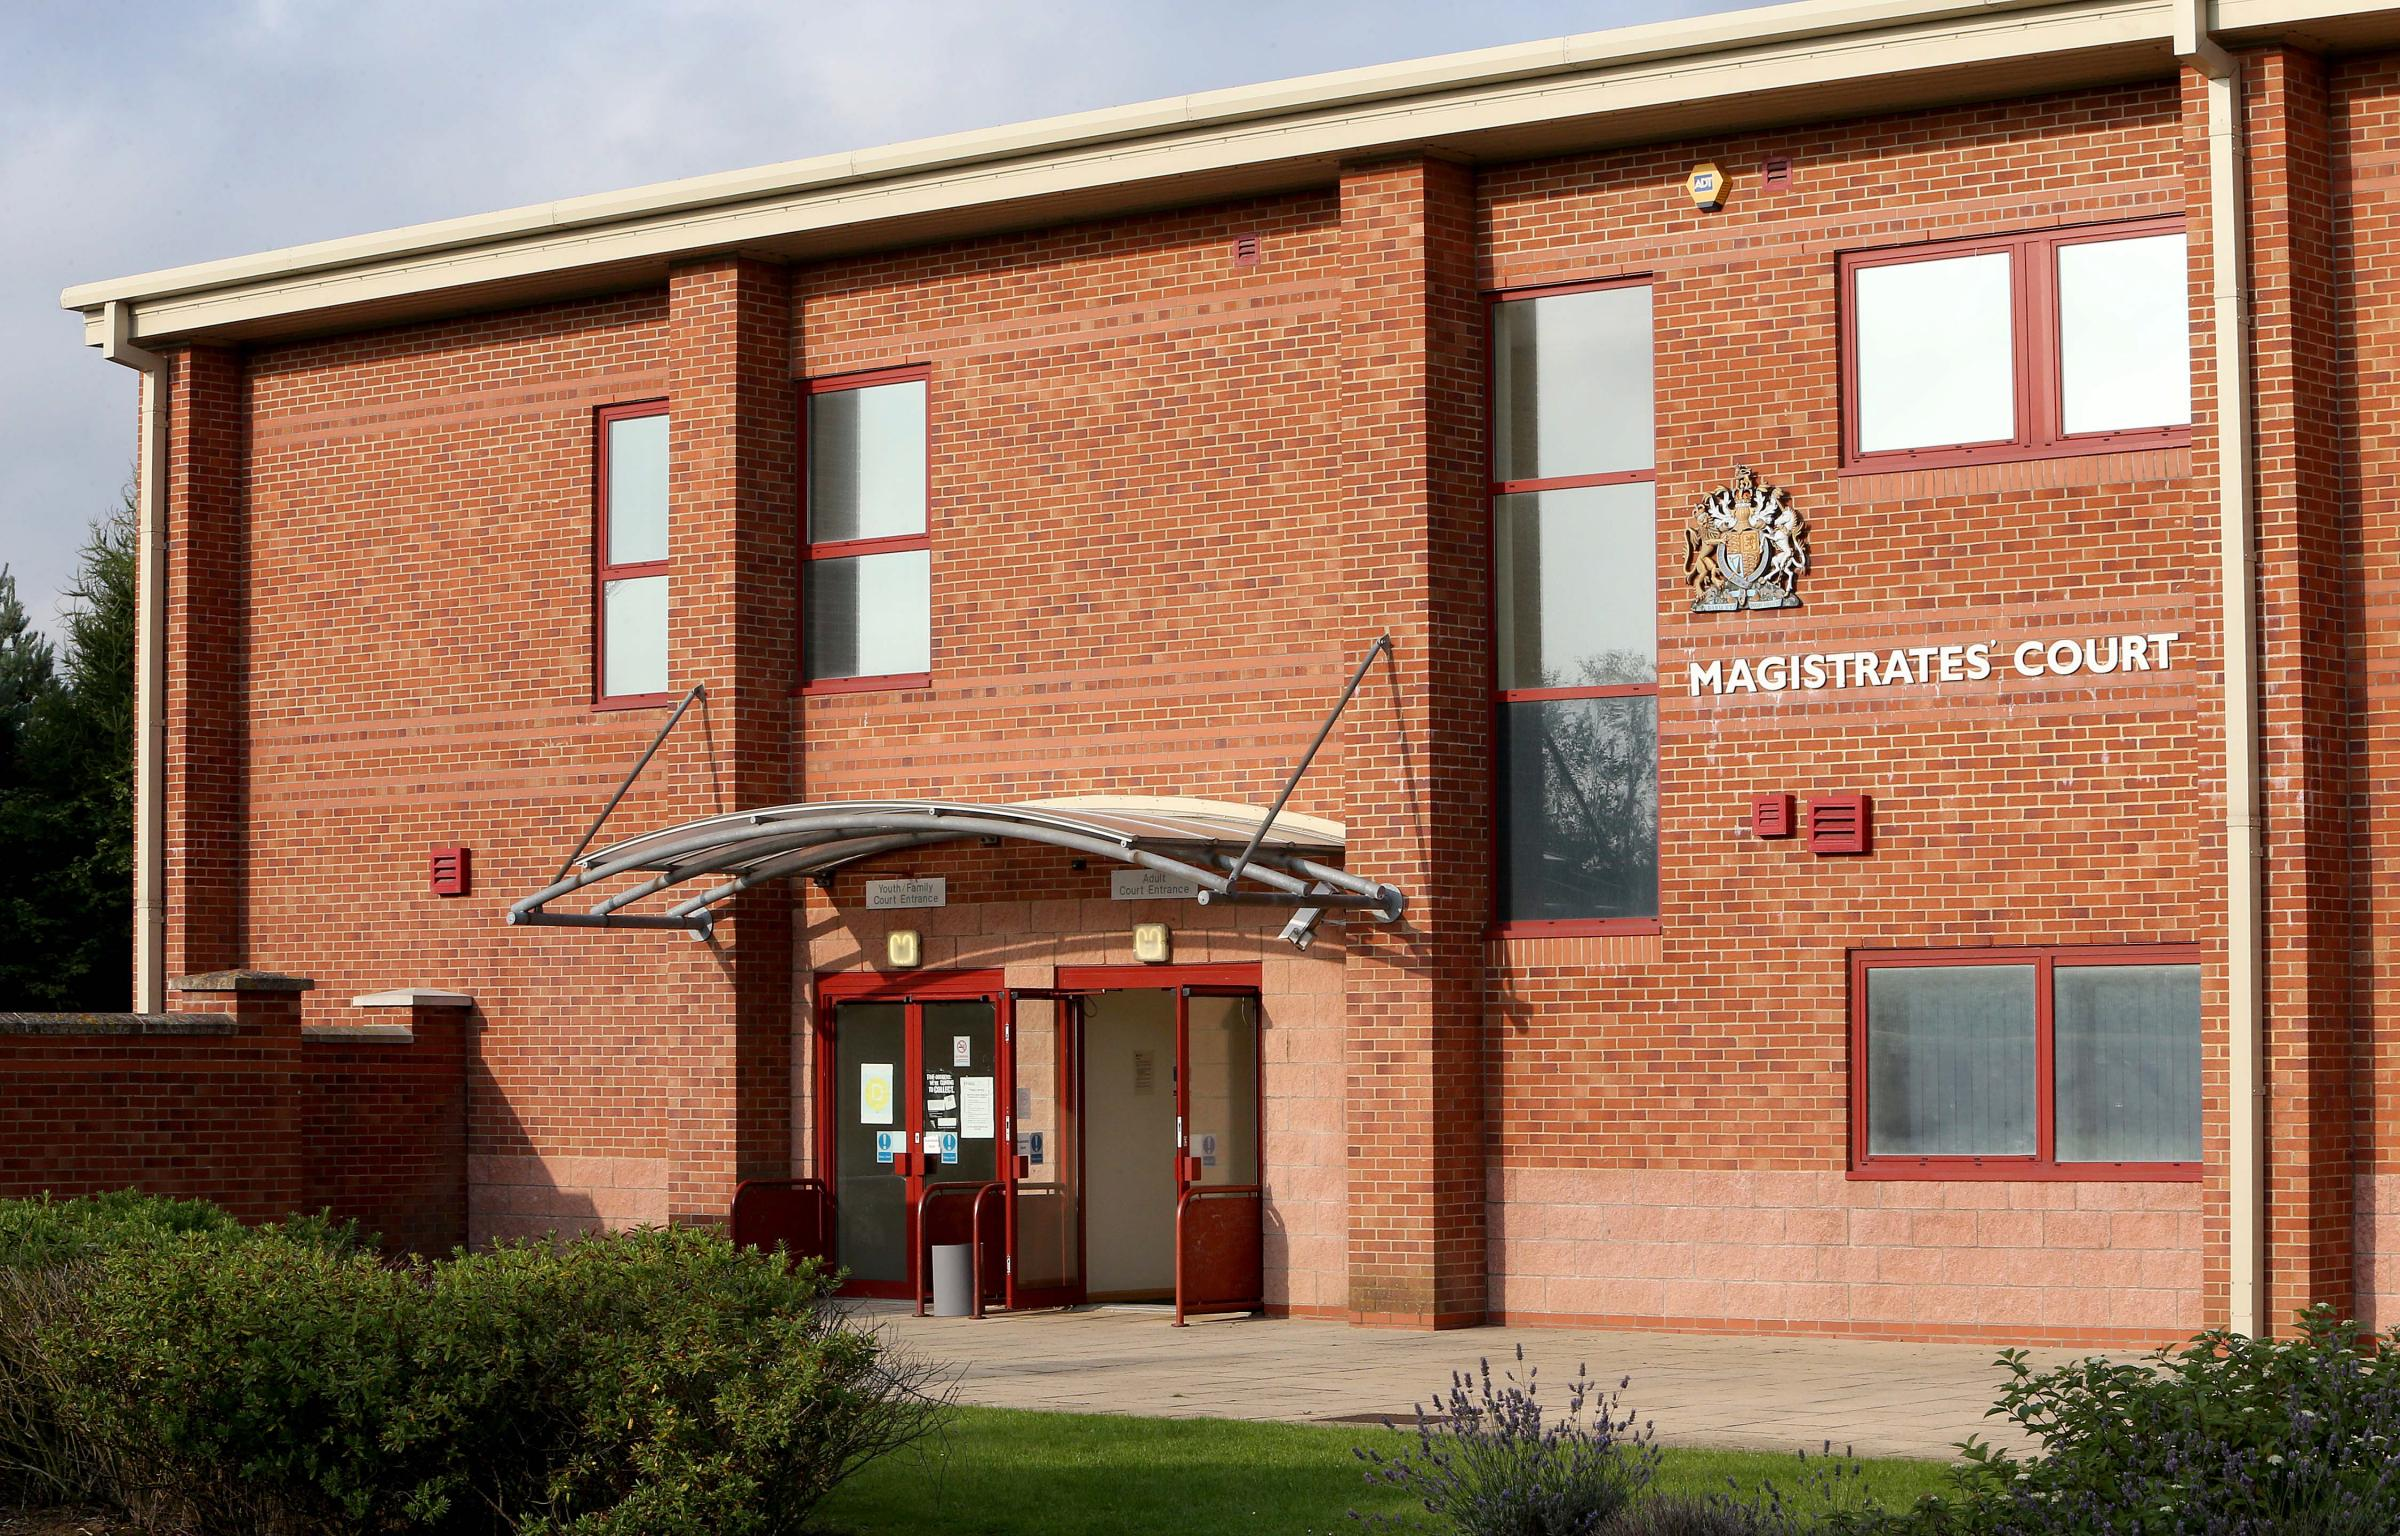 The case against Elite Composite Products Limited was heard at Peterlee Magistrates Court